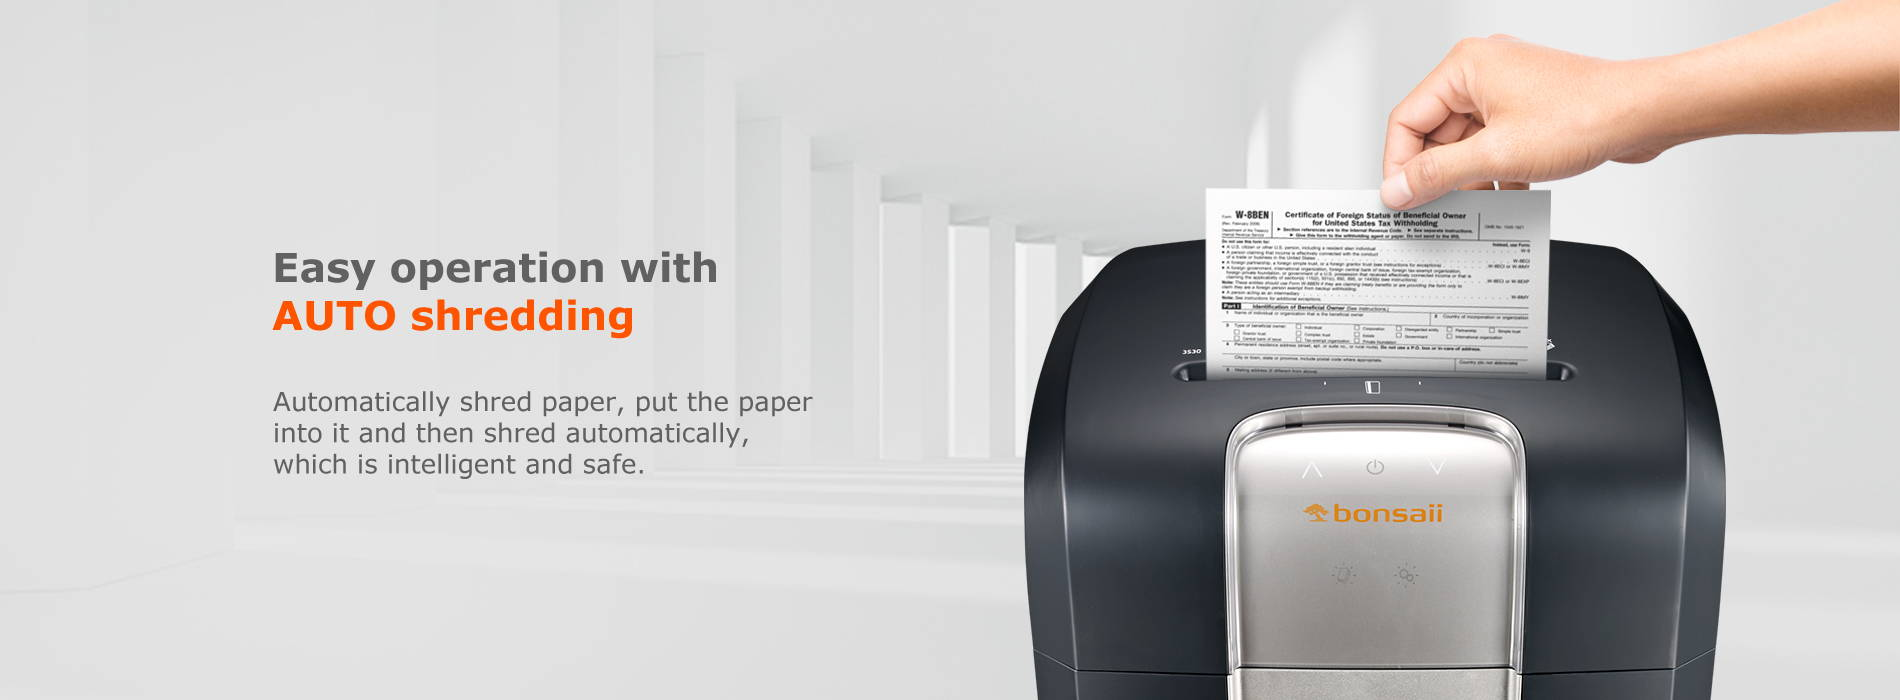 Easy operation with AUTO shredding Automatically shred paper, put the paper into it and then shred automatically, which is intelligent and safe